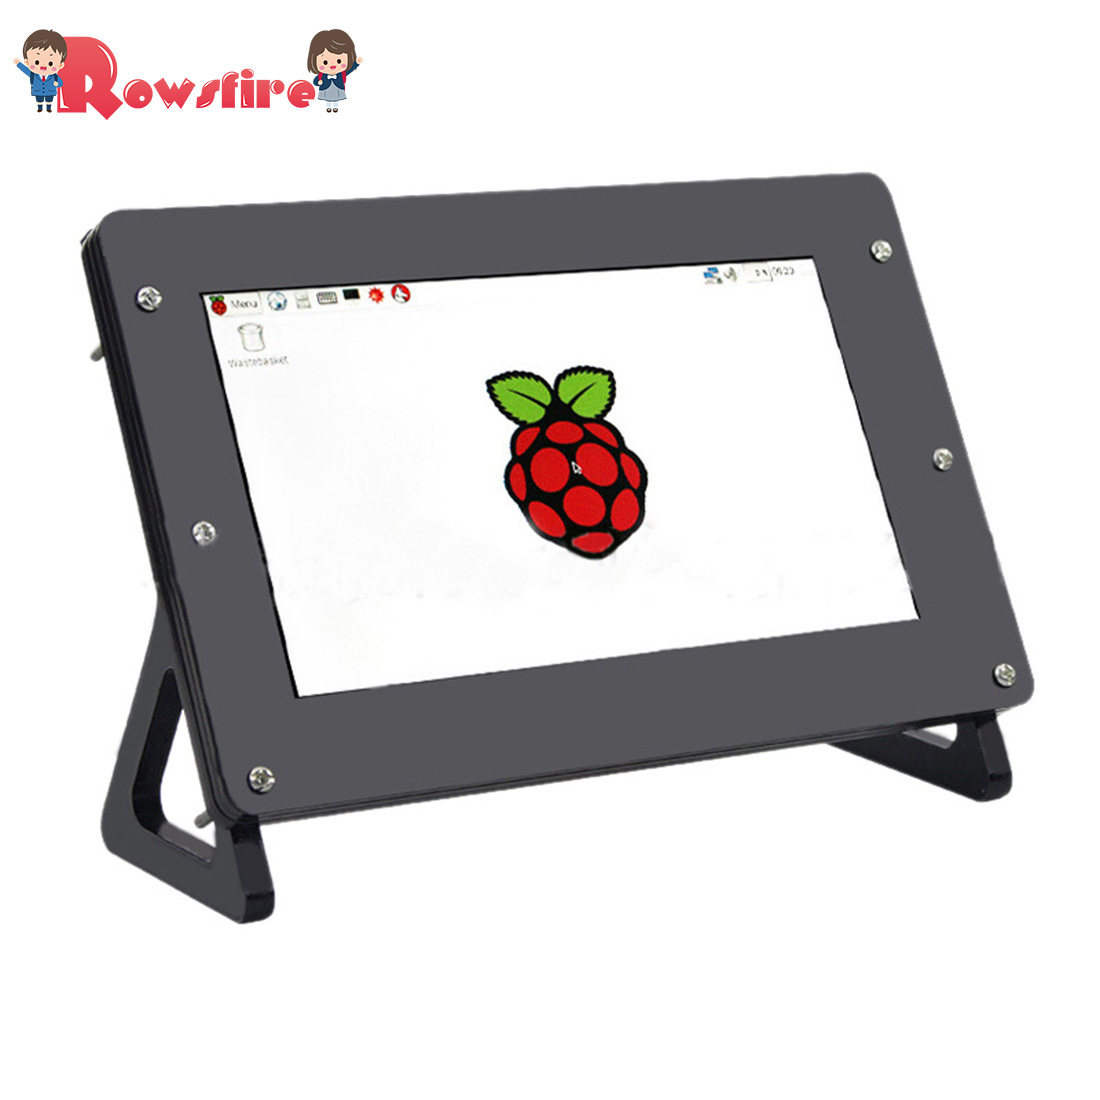 Acrylic Protective Shell For Raspberry Pi 3B+/3B/2B 7-Inch Split Screen